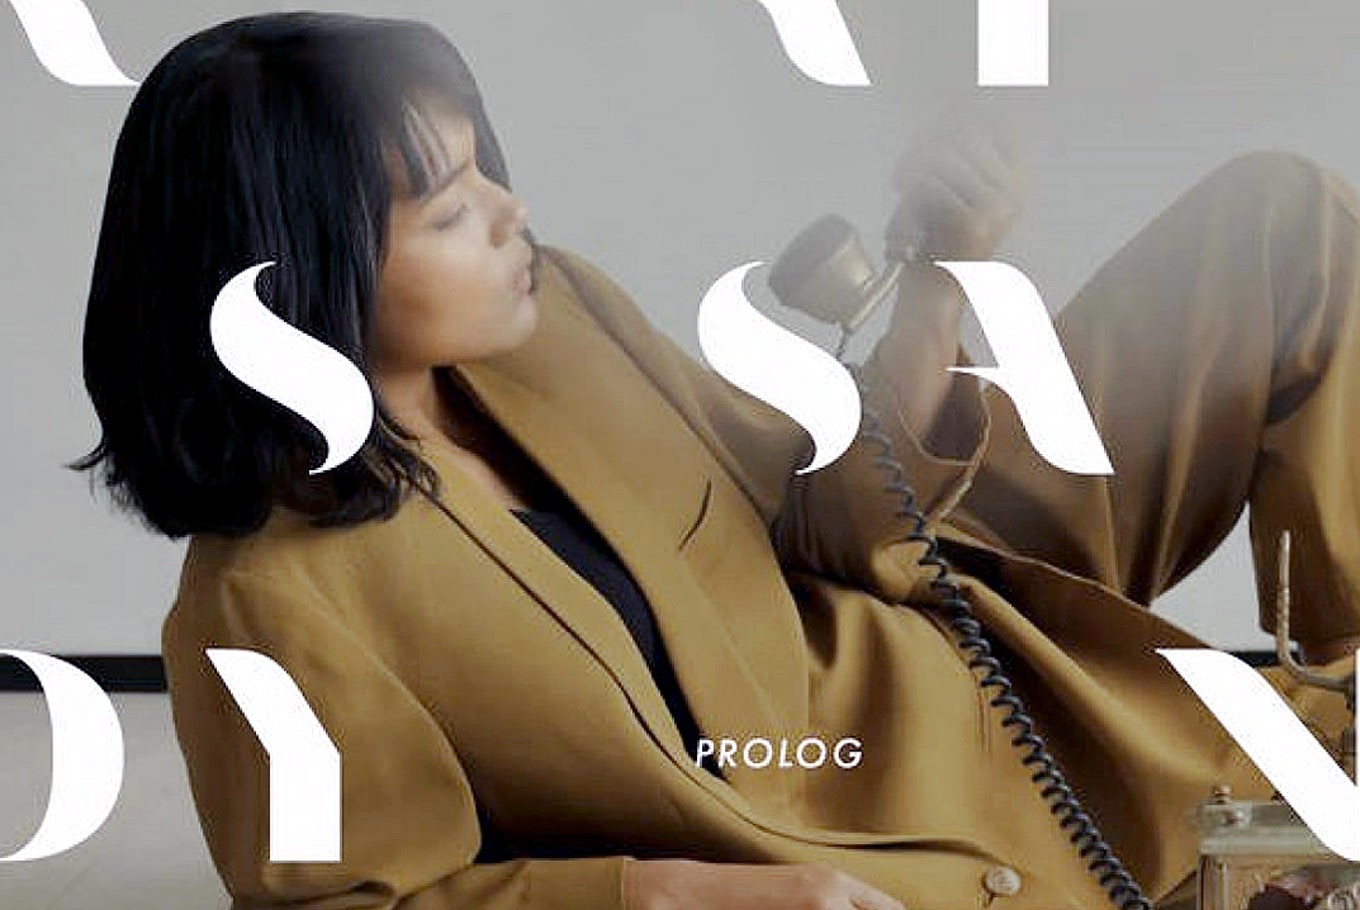 Album Review: 'Prolog' by Rayssa Dynta